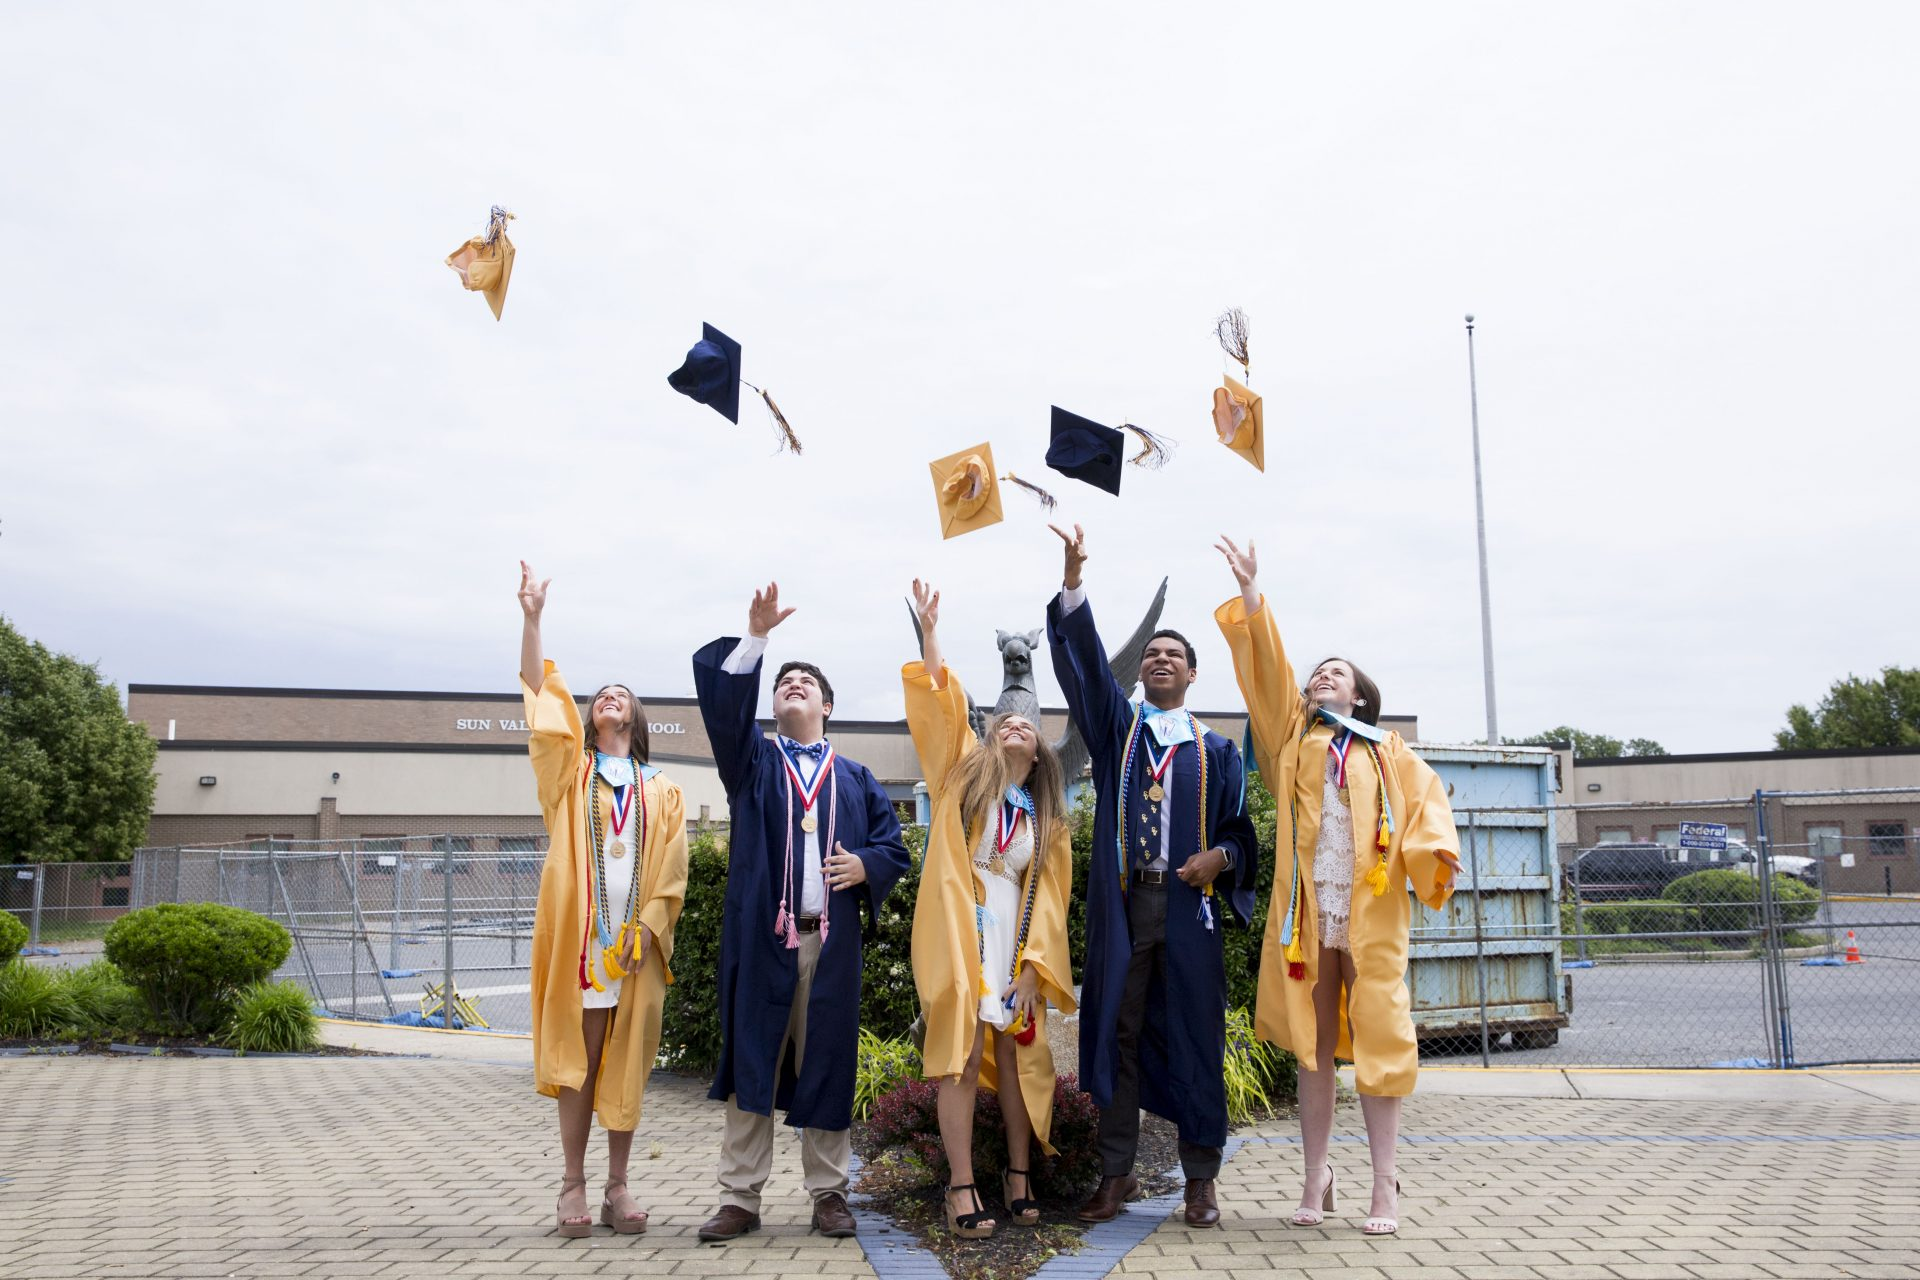 Bryson Eldrige (second to right), Sun Valley senior class president, throws his graduation cap with Sun Valley class officers (from left) Shay Buck, Dominick Marano, Sophia Belgirono, and Holly Dan after the class put together a virtual commencement ceremony on June 2, 2020.